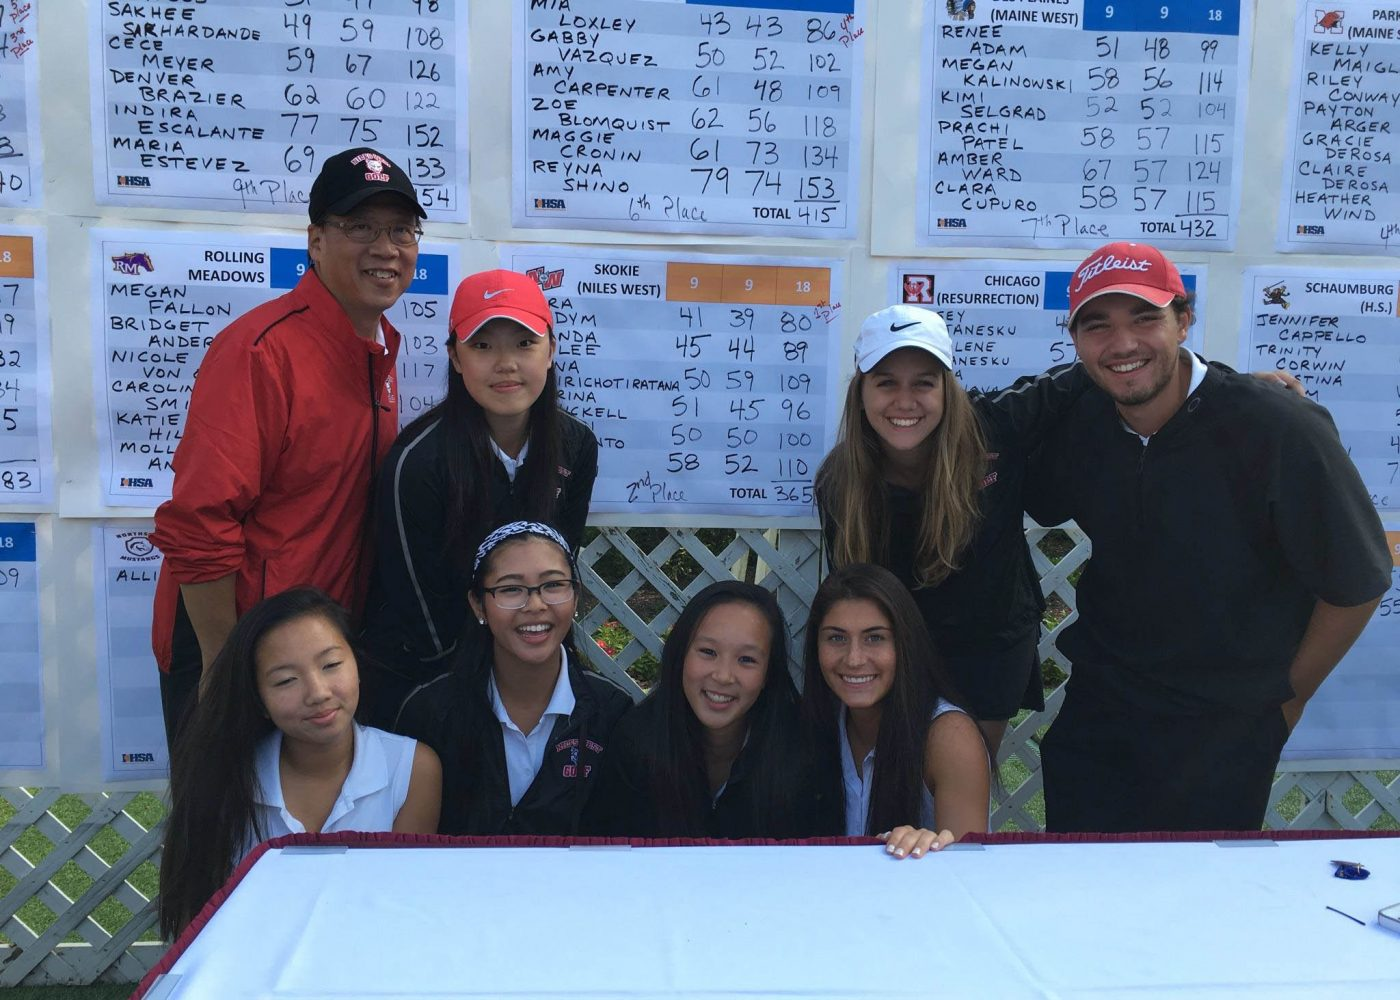 Niles+West+Golf+Advances+to+Sectionals